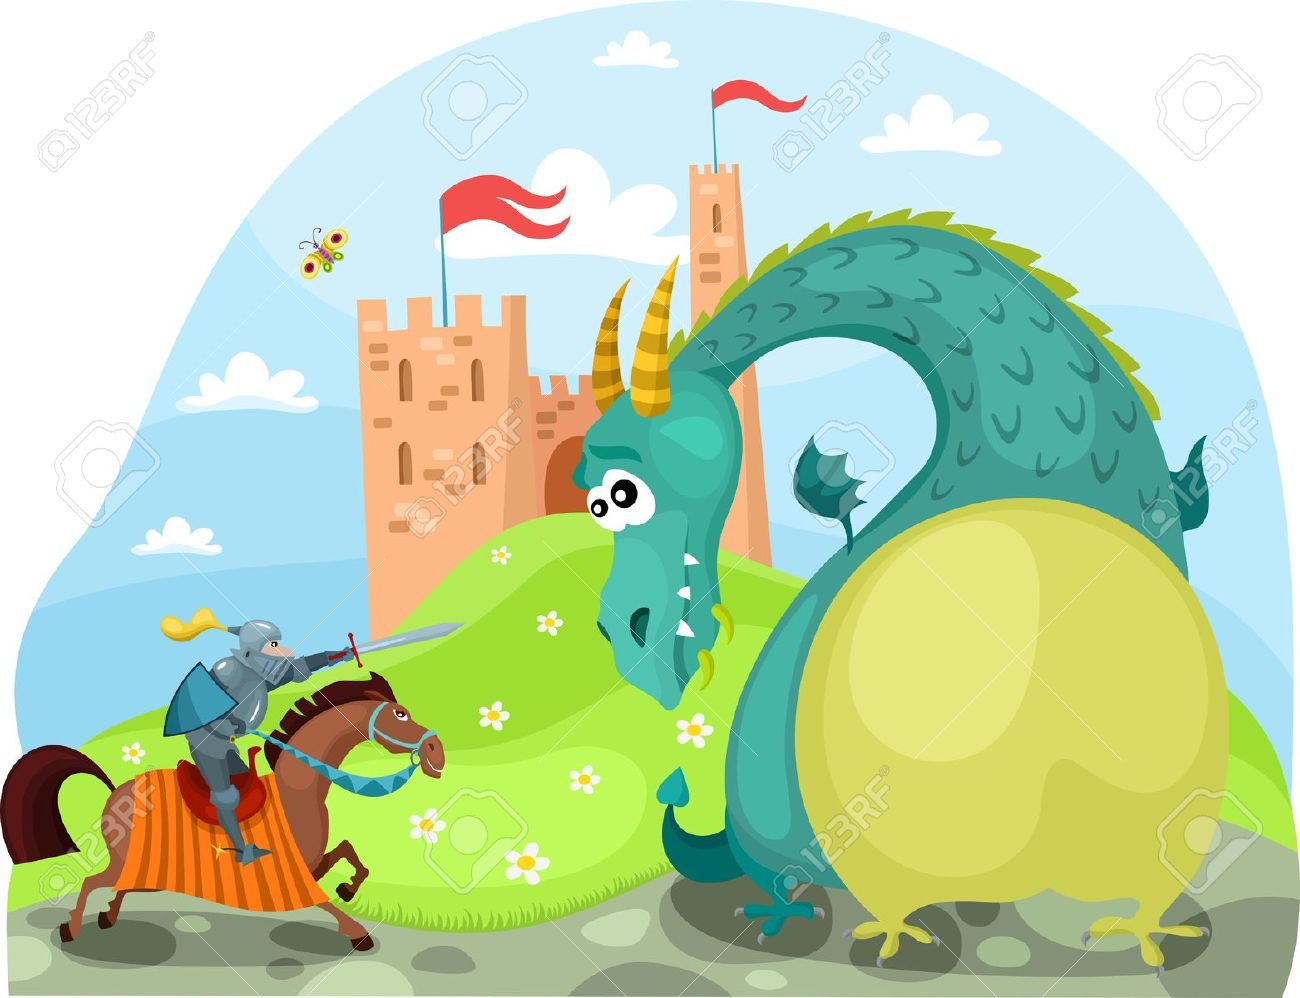 Knight fighting dragon clipart picture black and white library Dragon And Knight Royalty Free Cliparts, V #35644 ... picture black and white library